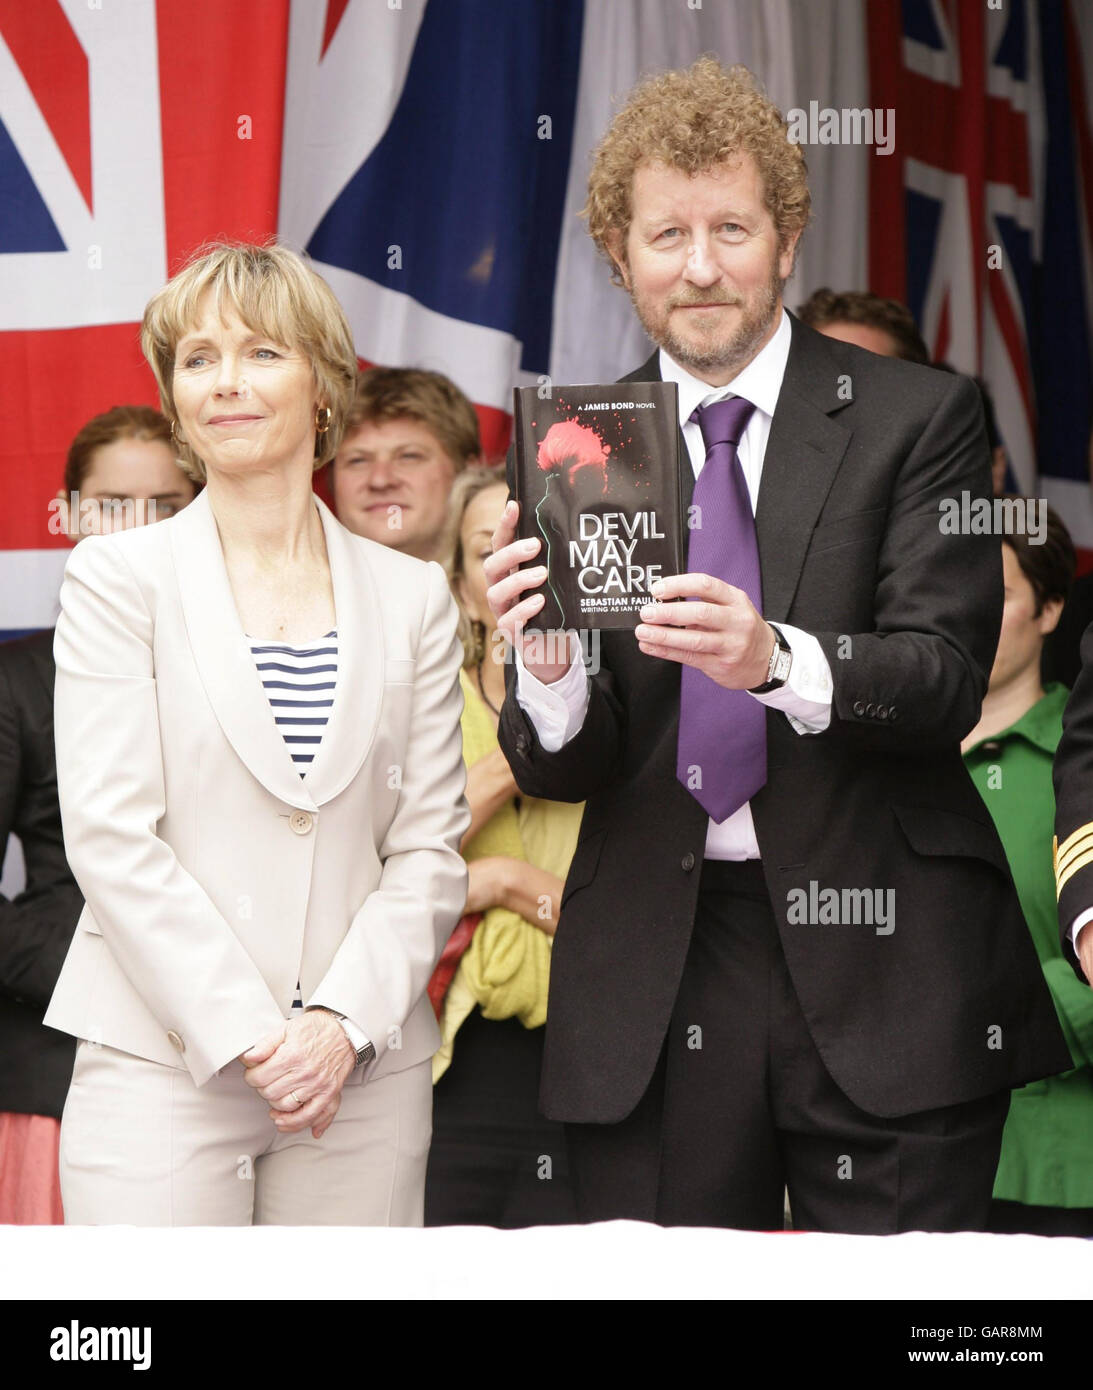 Launch of new James Bond novel - London Stock Photo